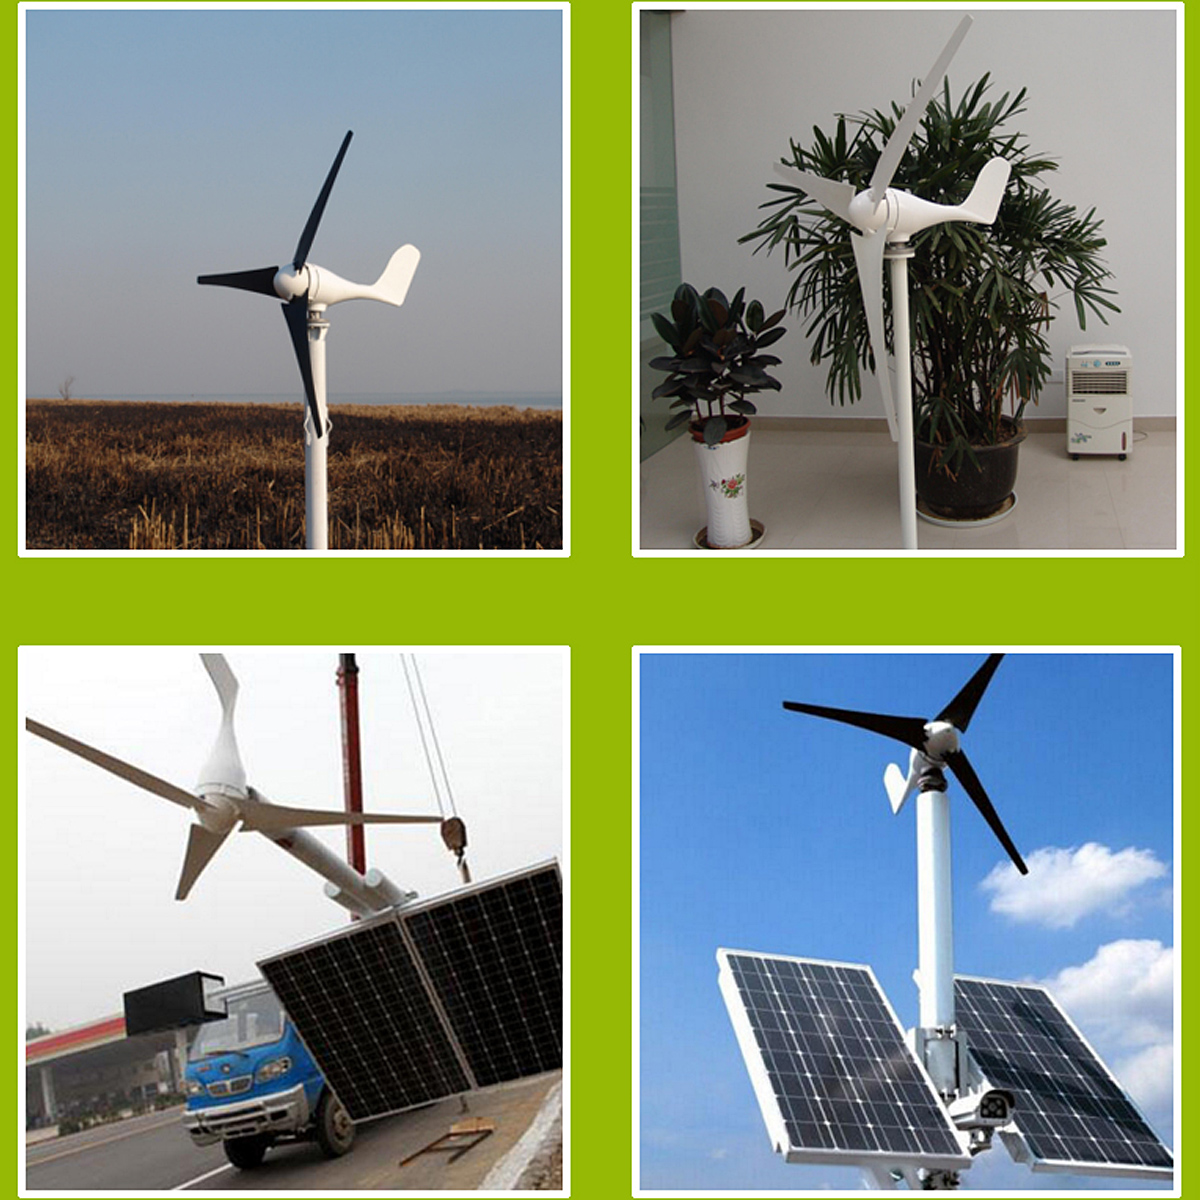 12V/24V 500W Miniature Wind Turbine Generator With Controller 3 Blades Wind Generator